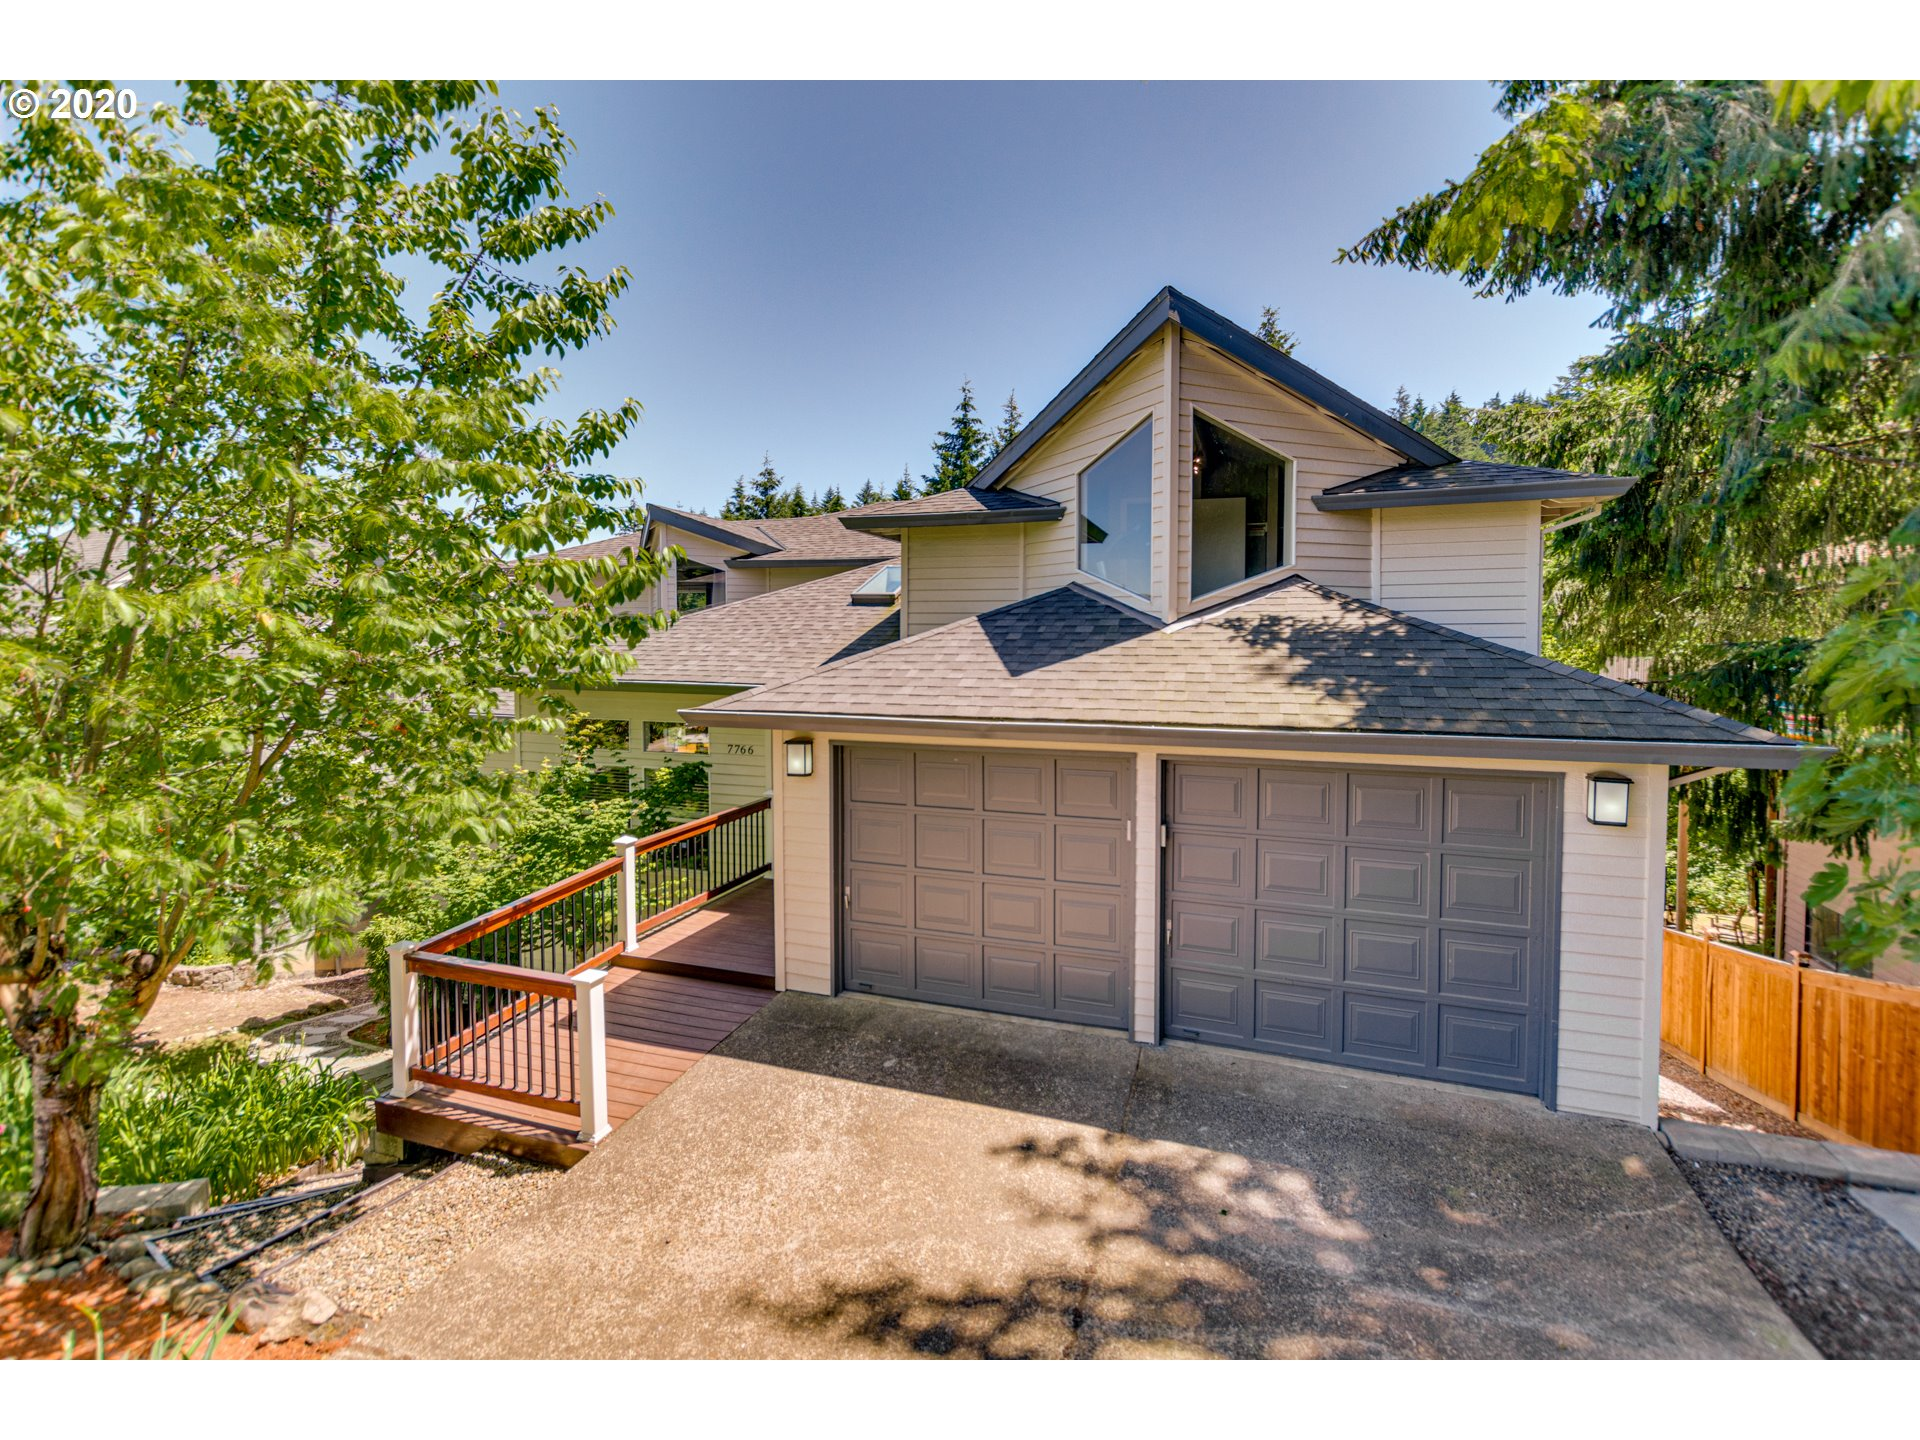 Photo of 7766 SW BAYBERRY DR, Beaverton, OR 97007